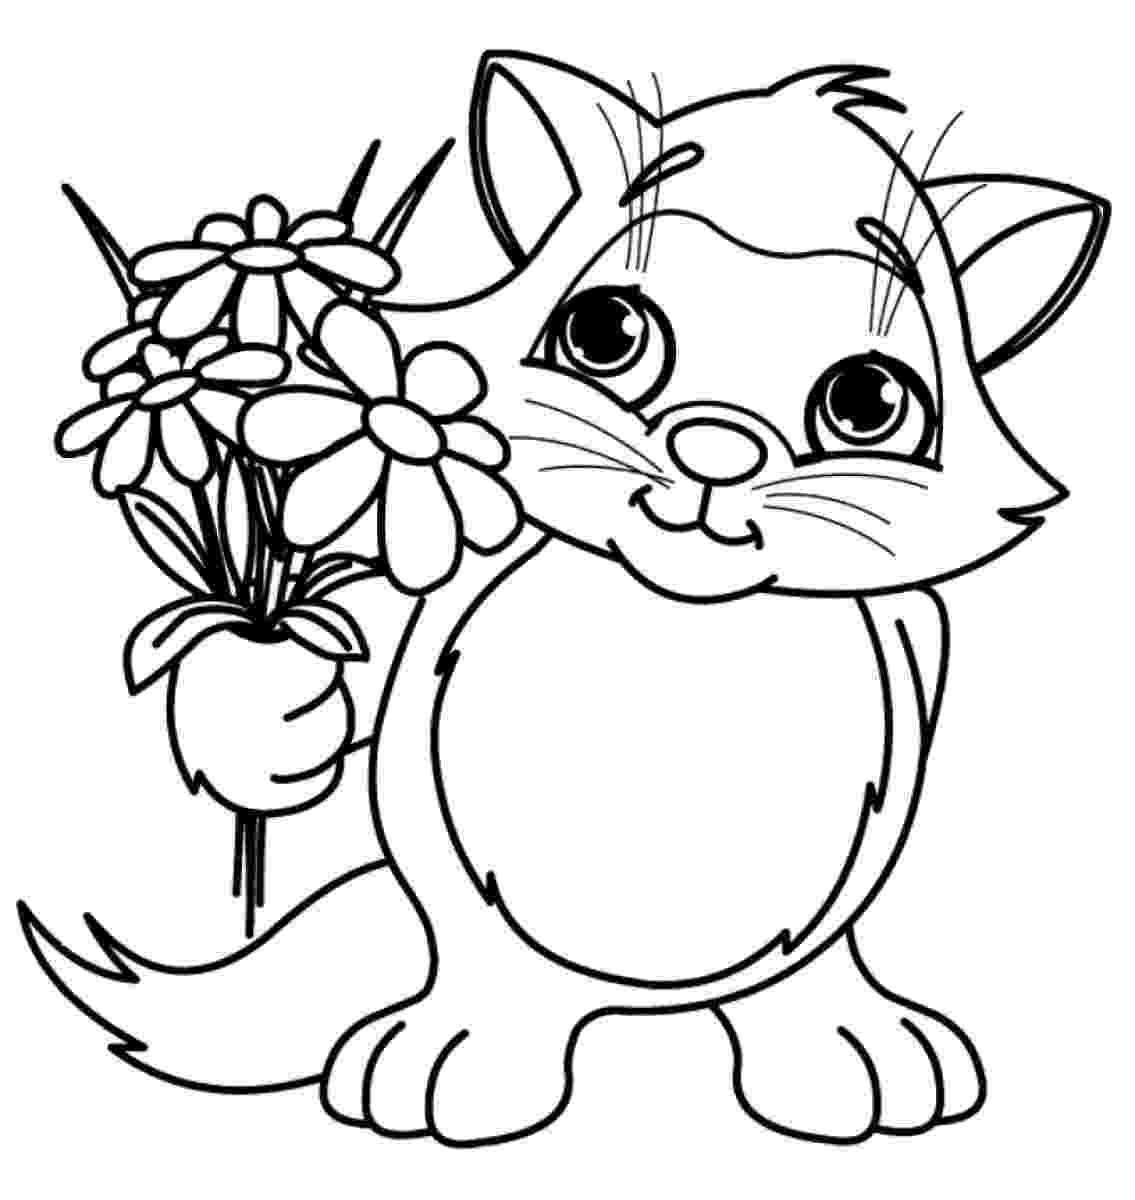 flowers to print and colour coloring pages for kids by mr adron flower hearts kid39s to flowers and colour print